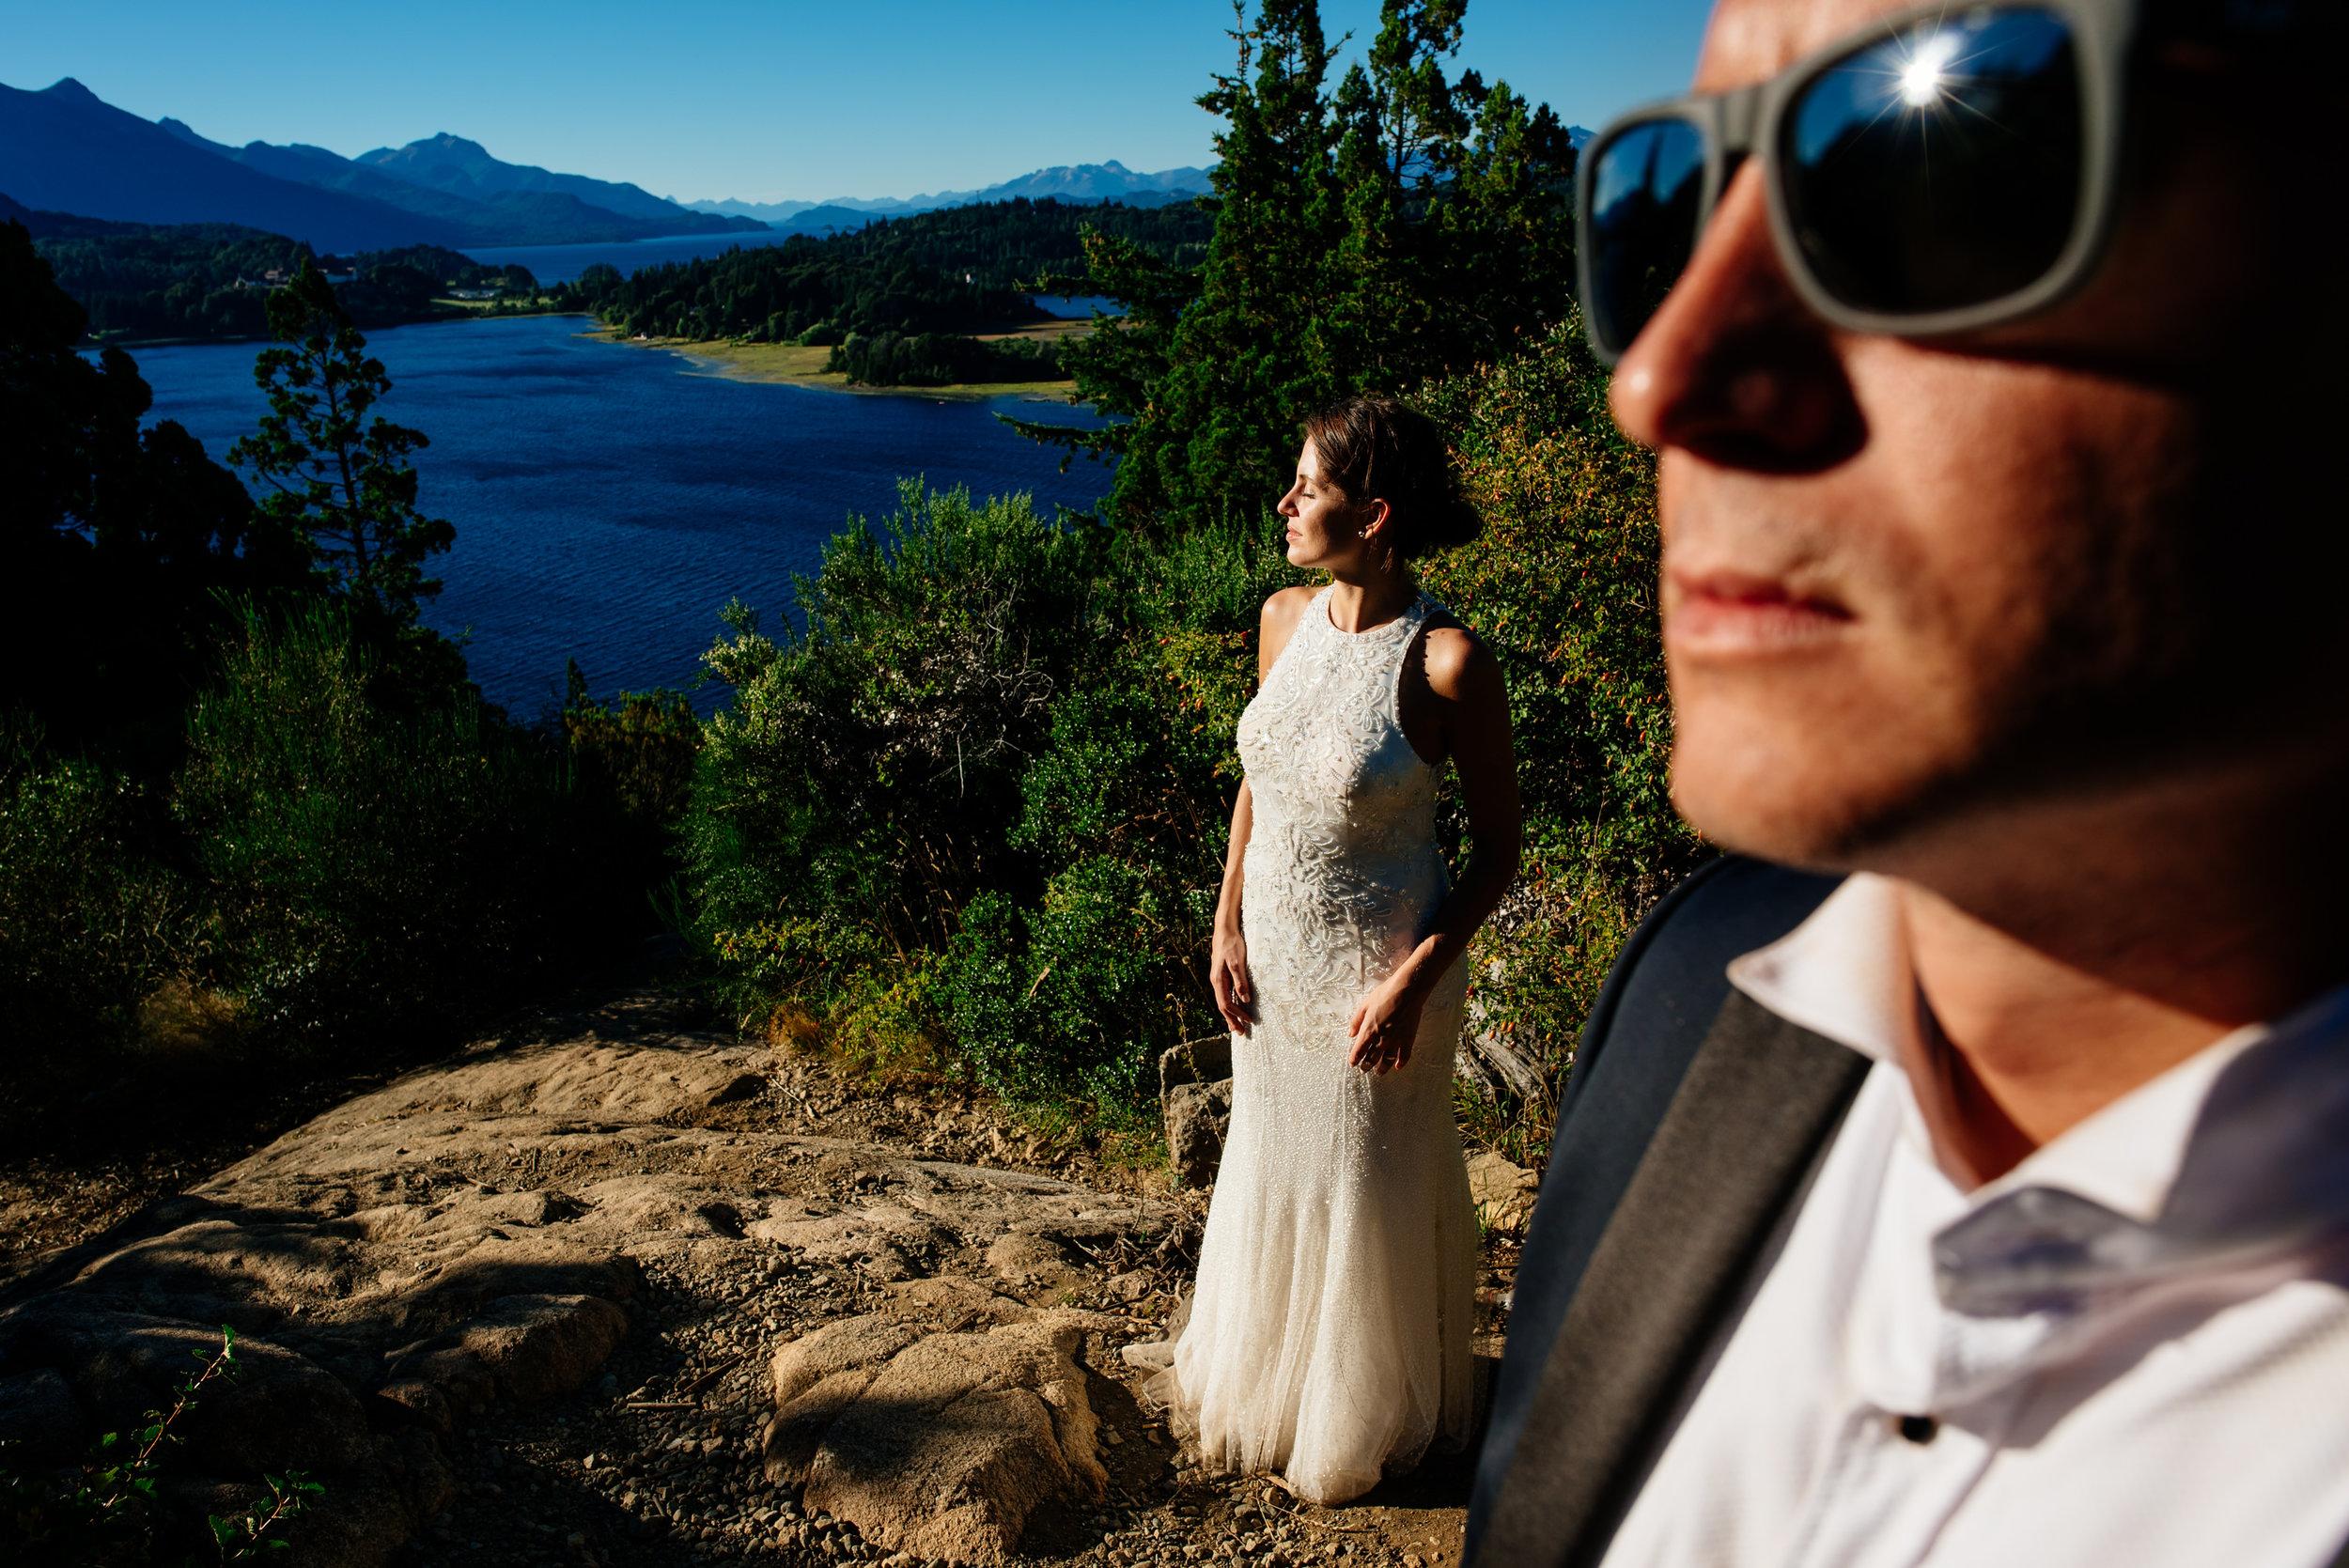 boda-bariloche-trash-the-dress-argentina-maxi-oviedo-14.jpg